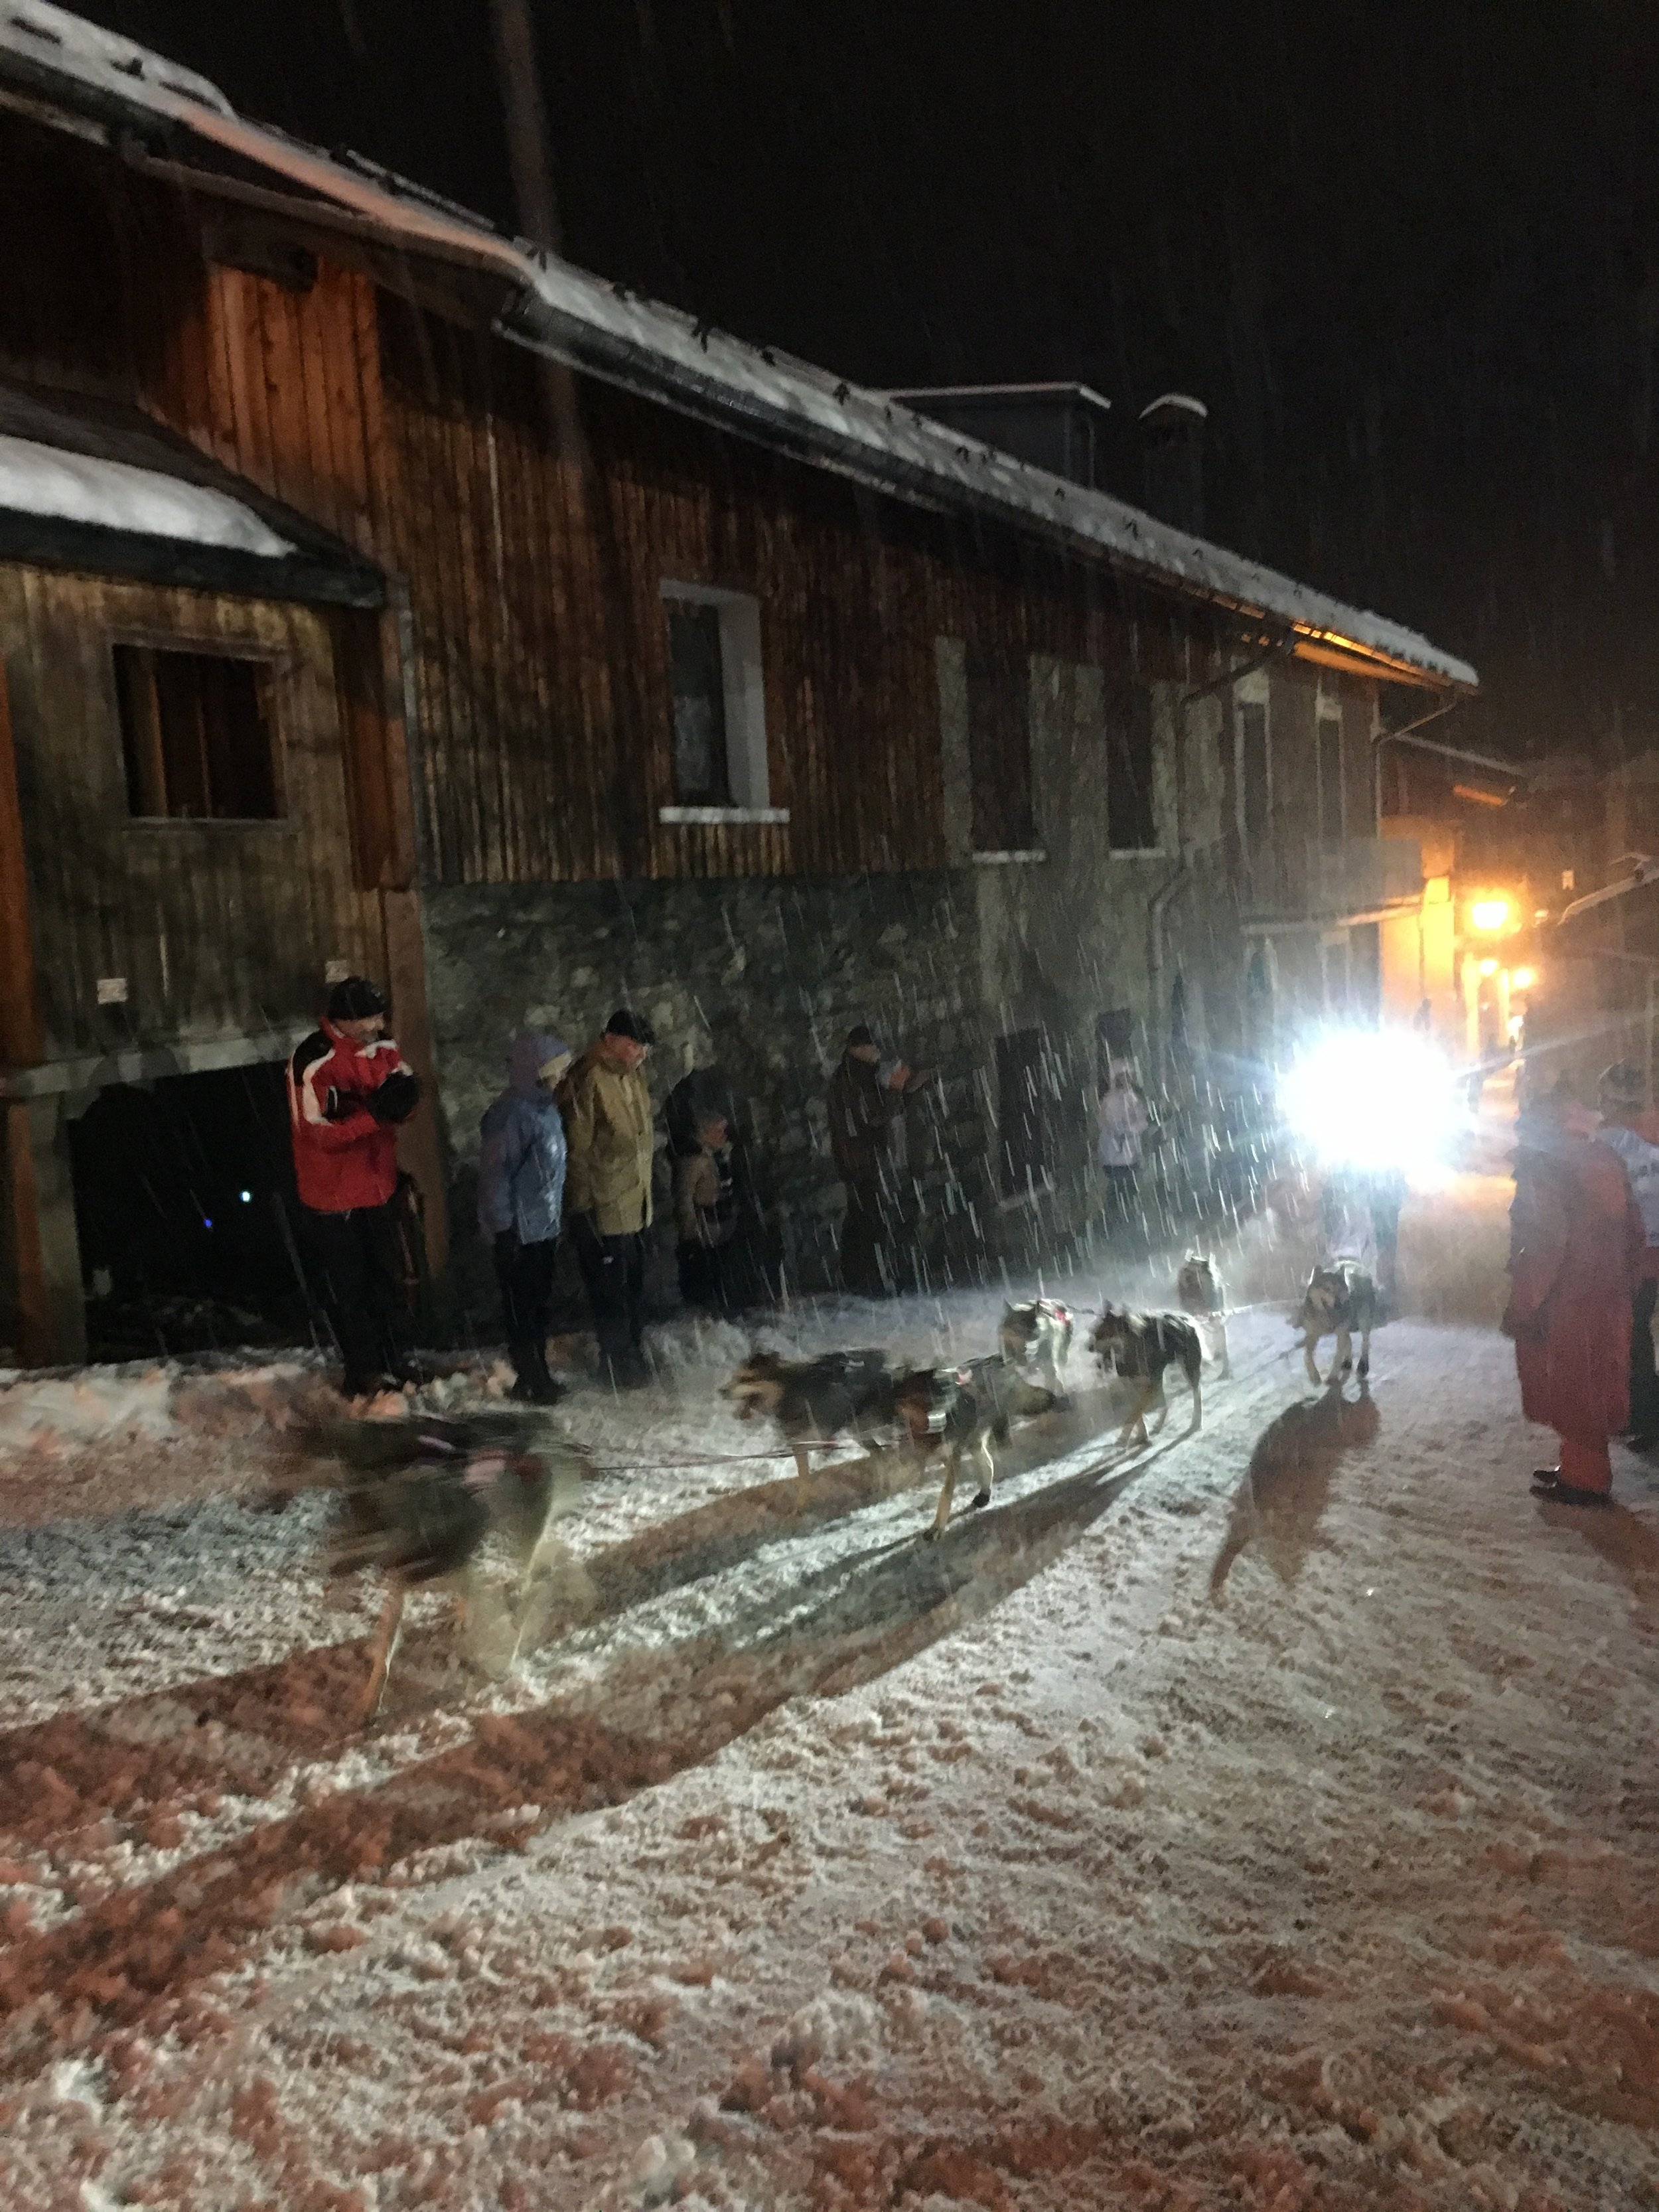 Dog team running through the pouring rain in Pralognan la Vanoise.